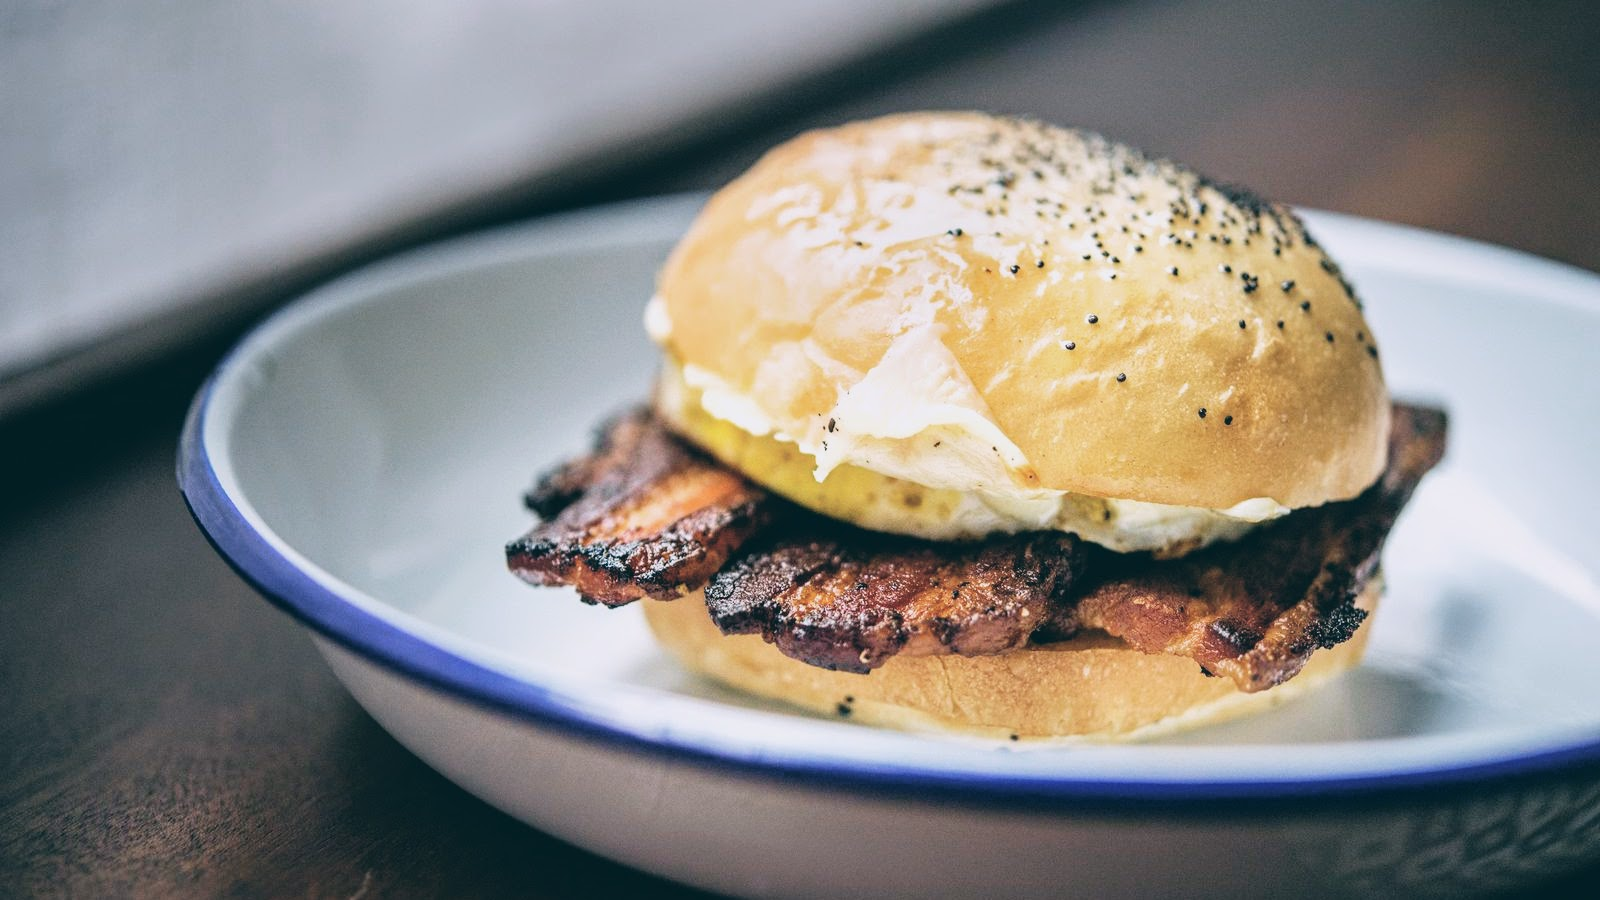 New York: egg sandwich, crullers and all that magic at Daily Provisions coffeshop